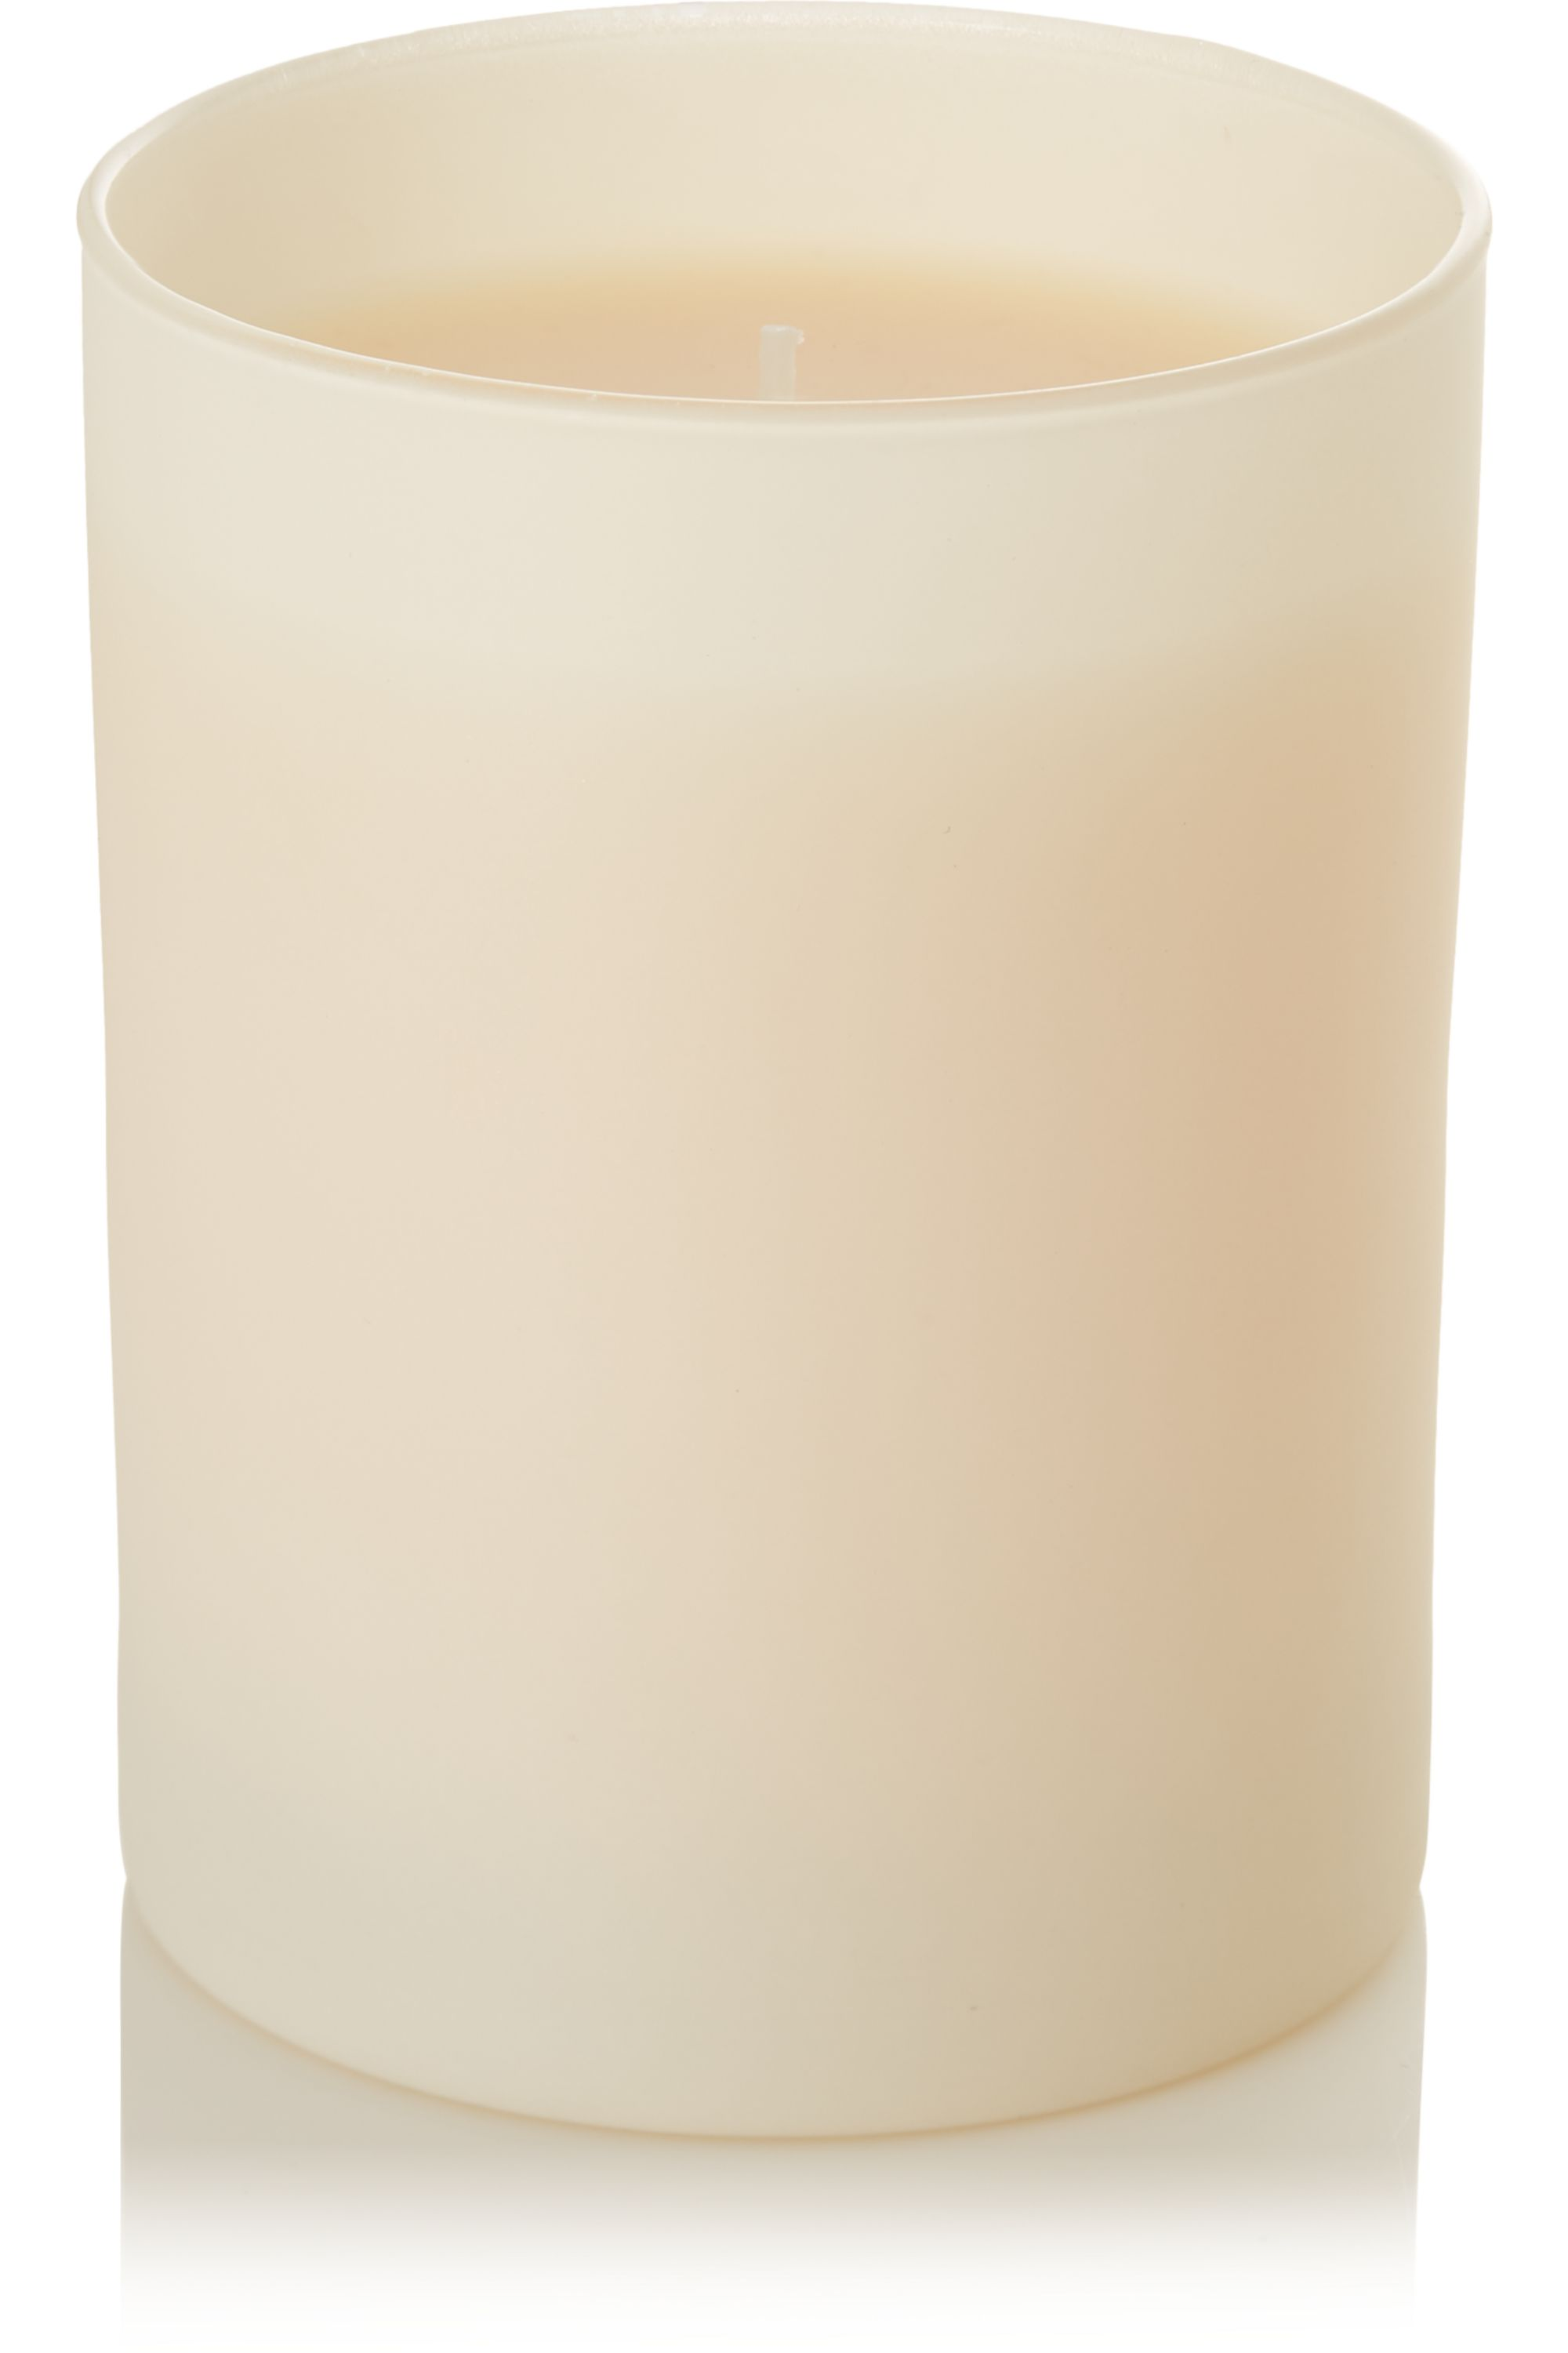 AERIN Beauty Buckhorn Amber scented candle